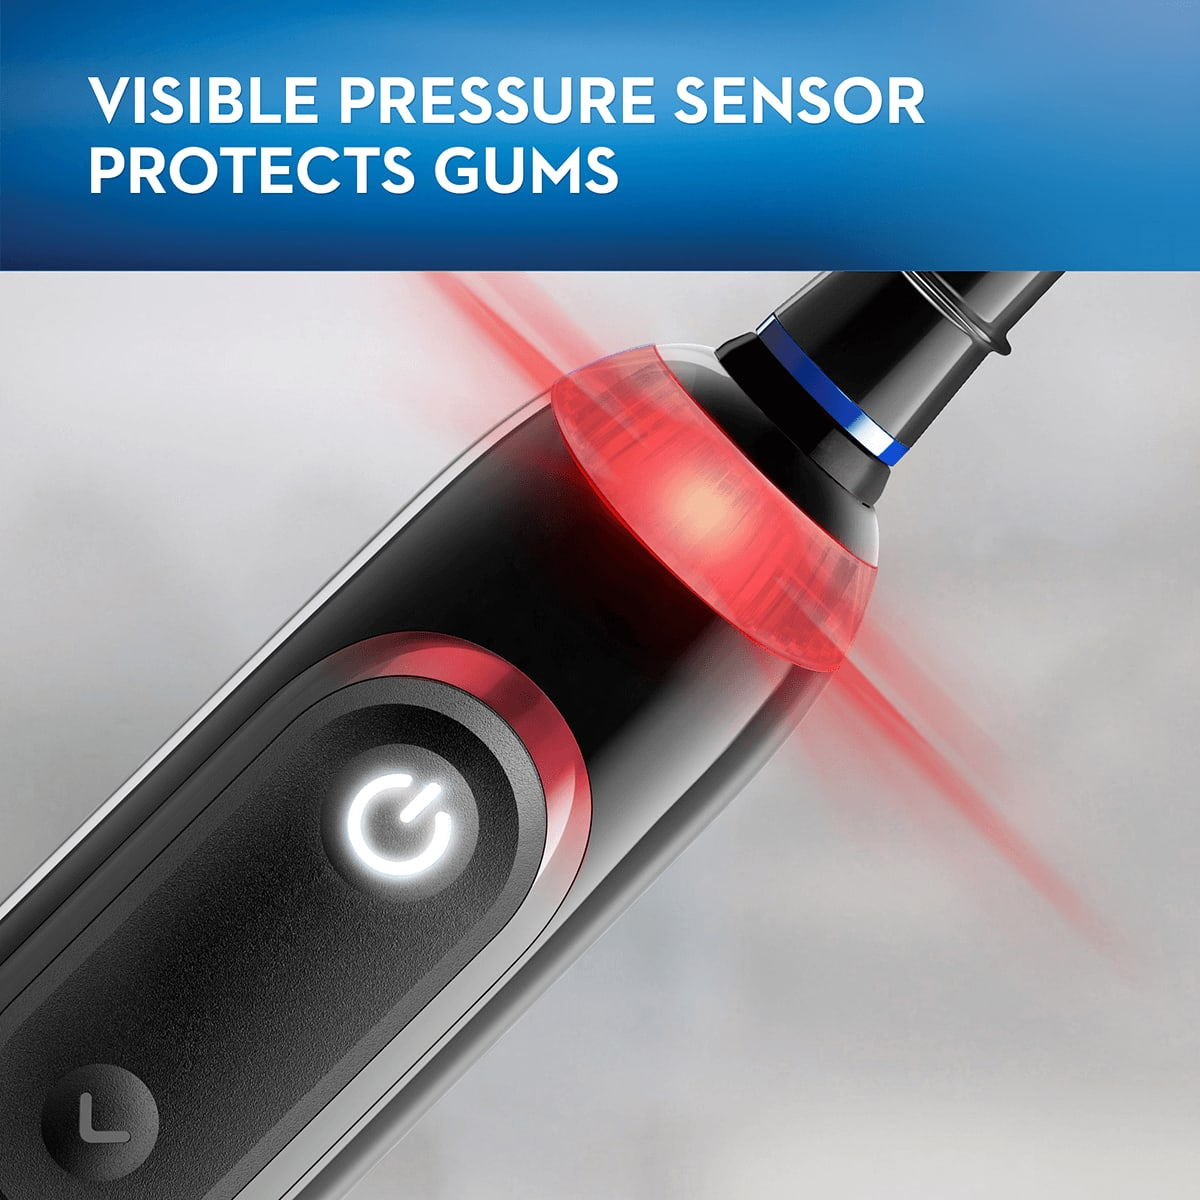 Visible Pressure Sensor Protects Gums